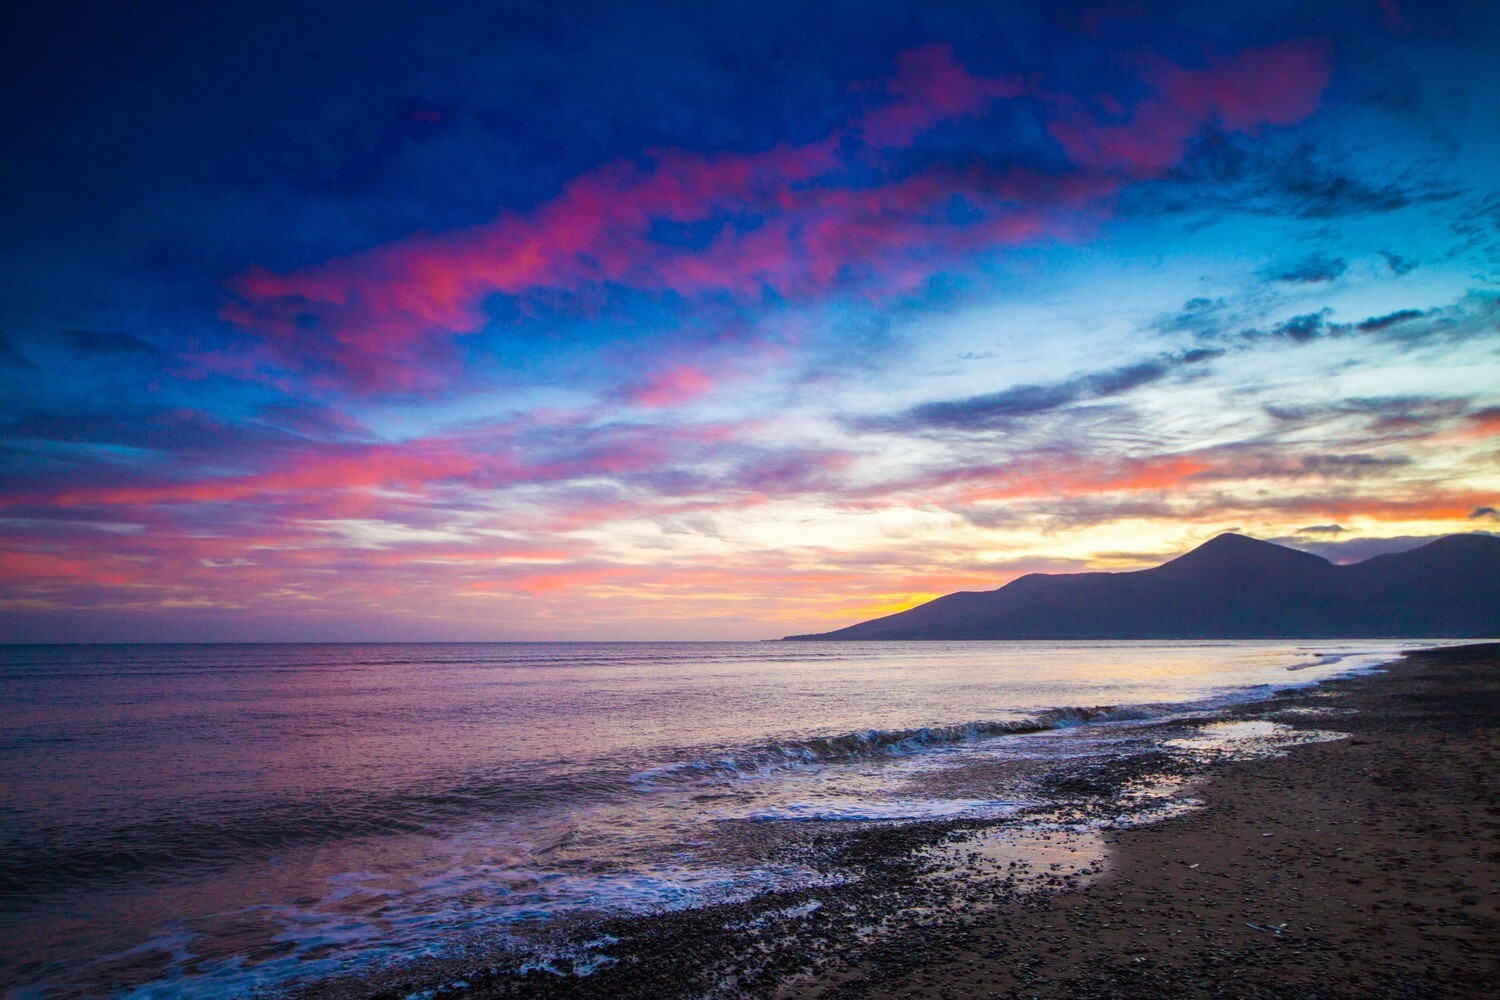 Keel Point at Sunset, County Down, N.Ireland